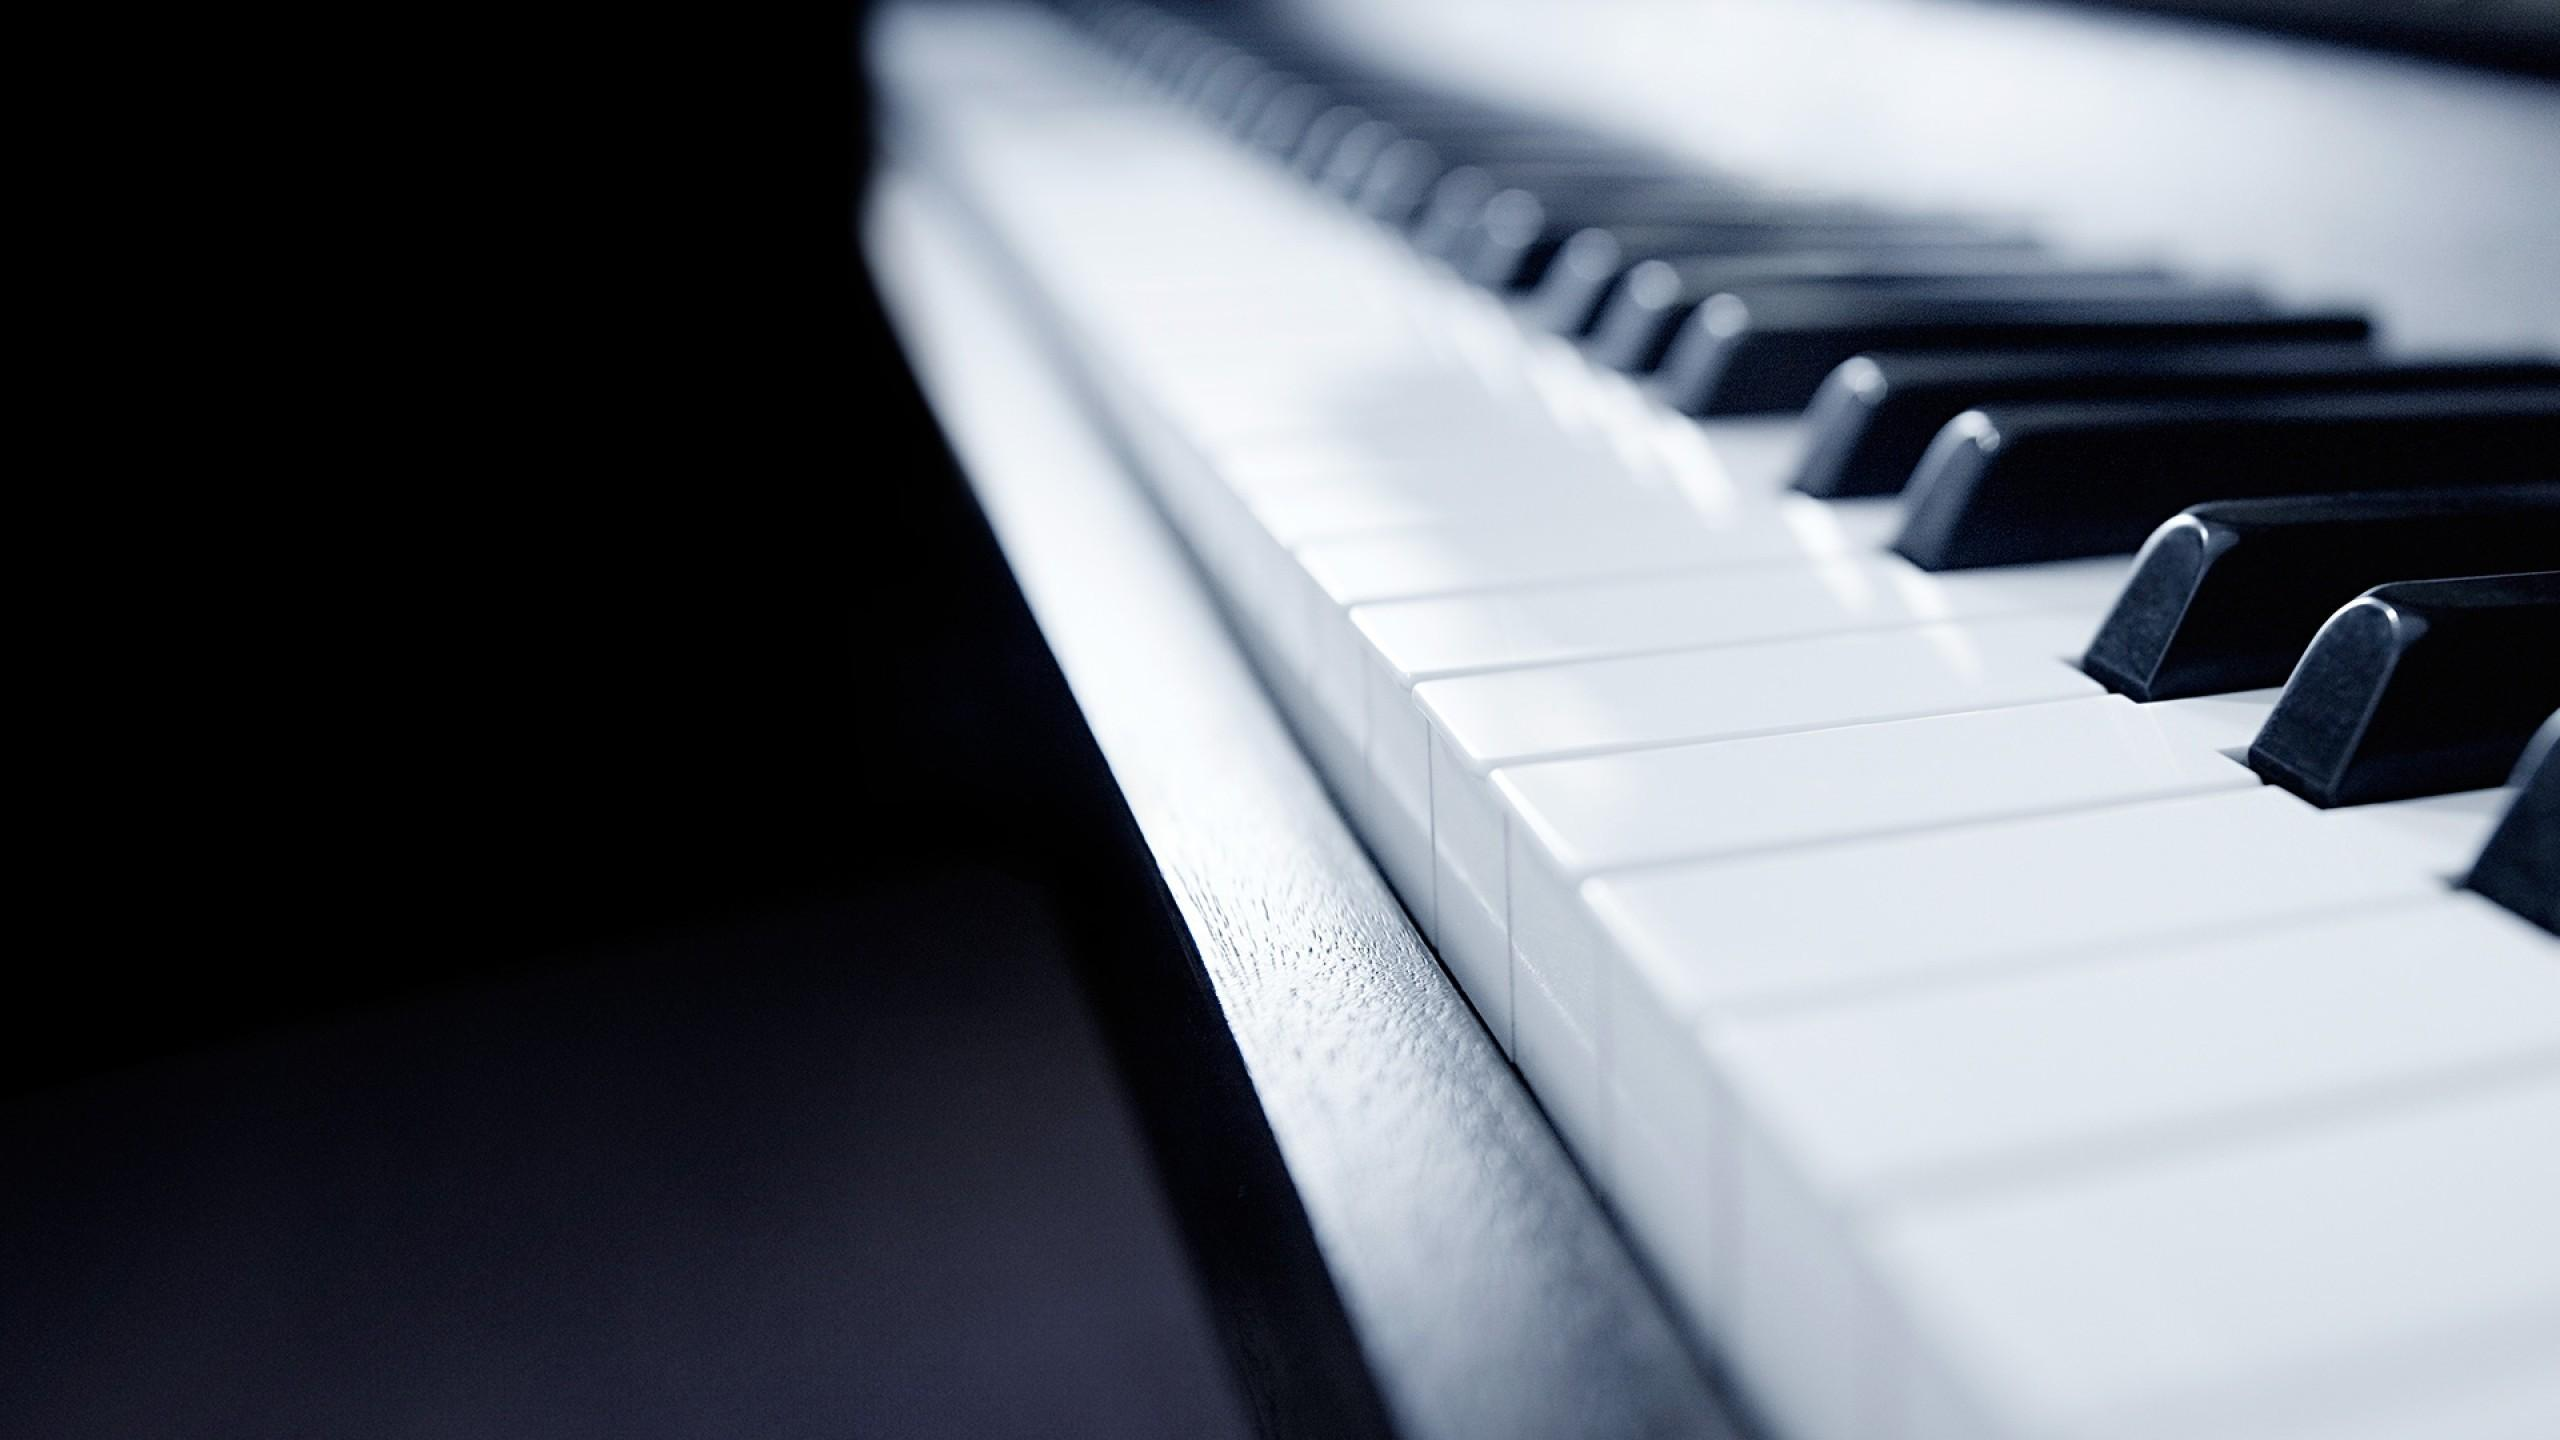 Download 2560x1440 Piano Keyboard, Music, Instrument Wallpapers for ...